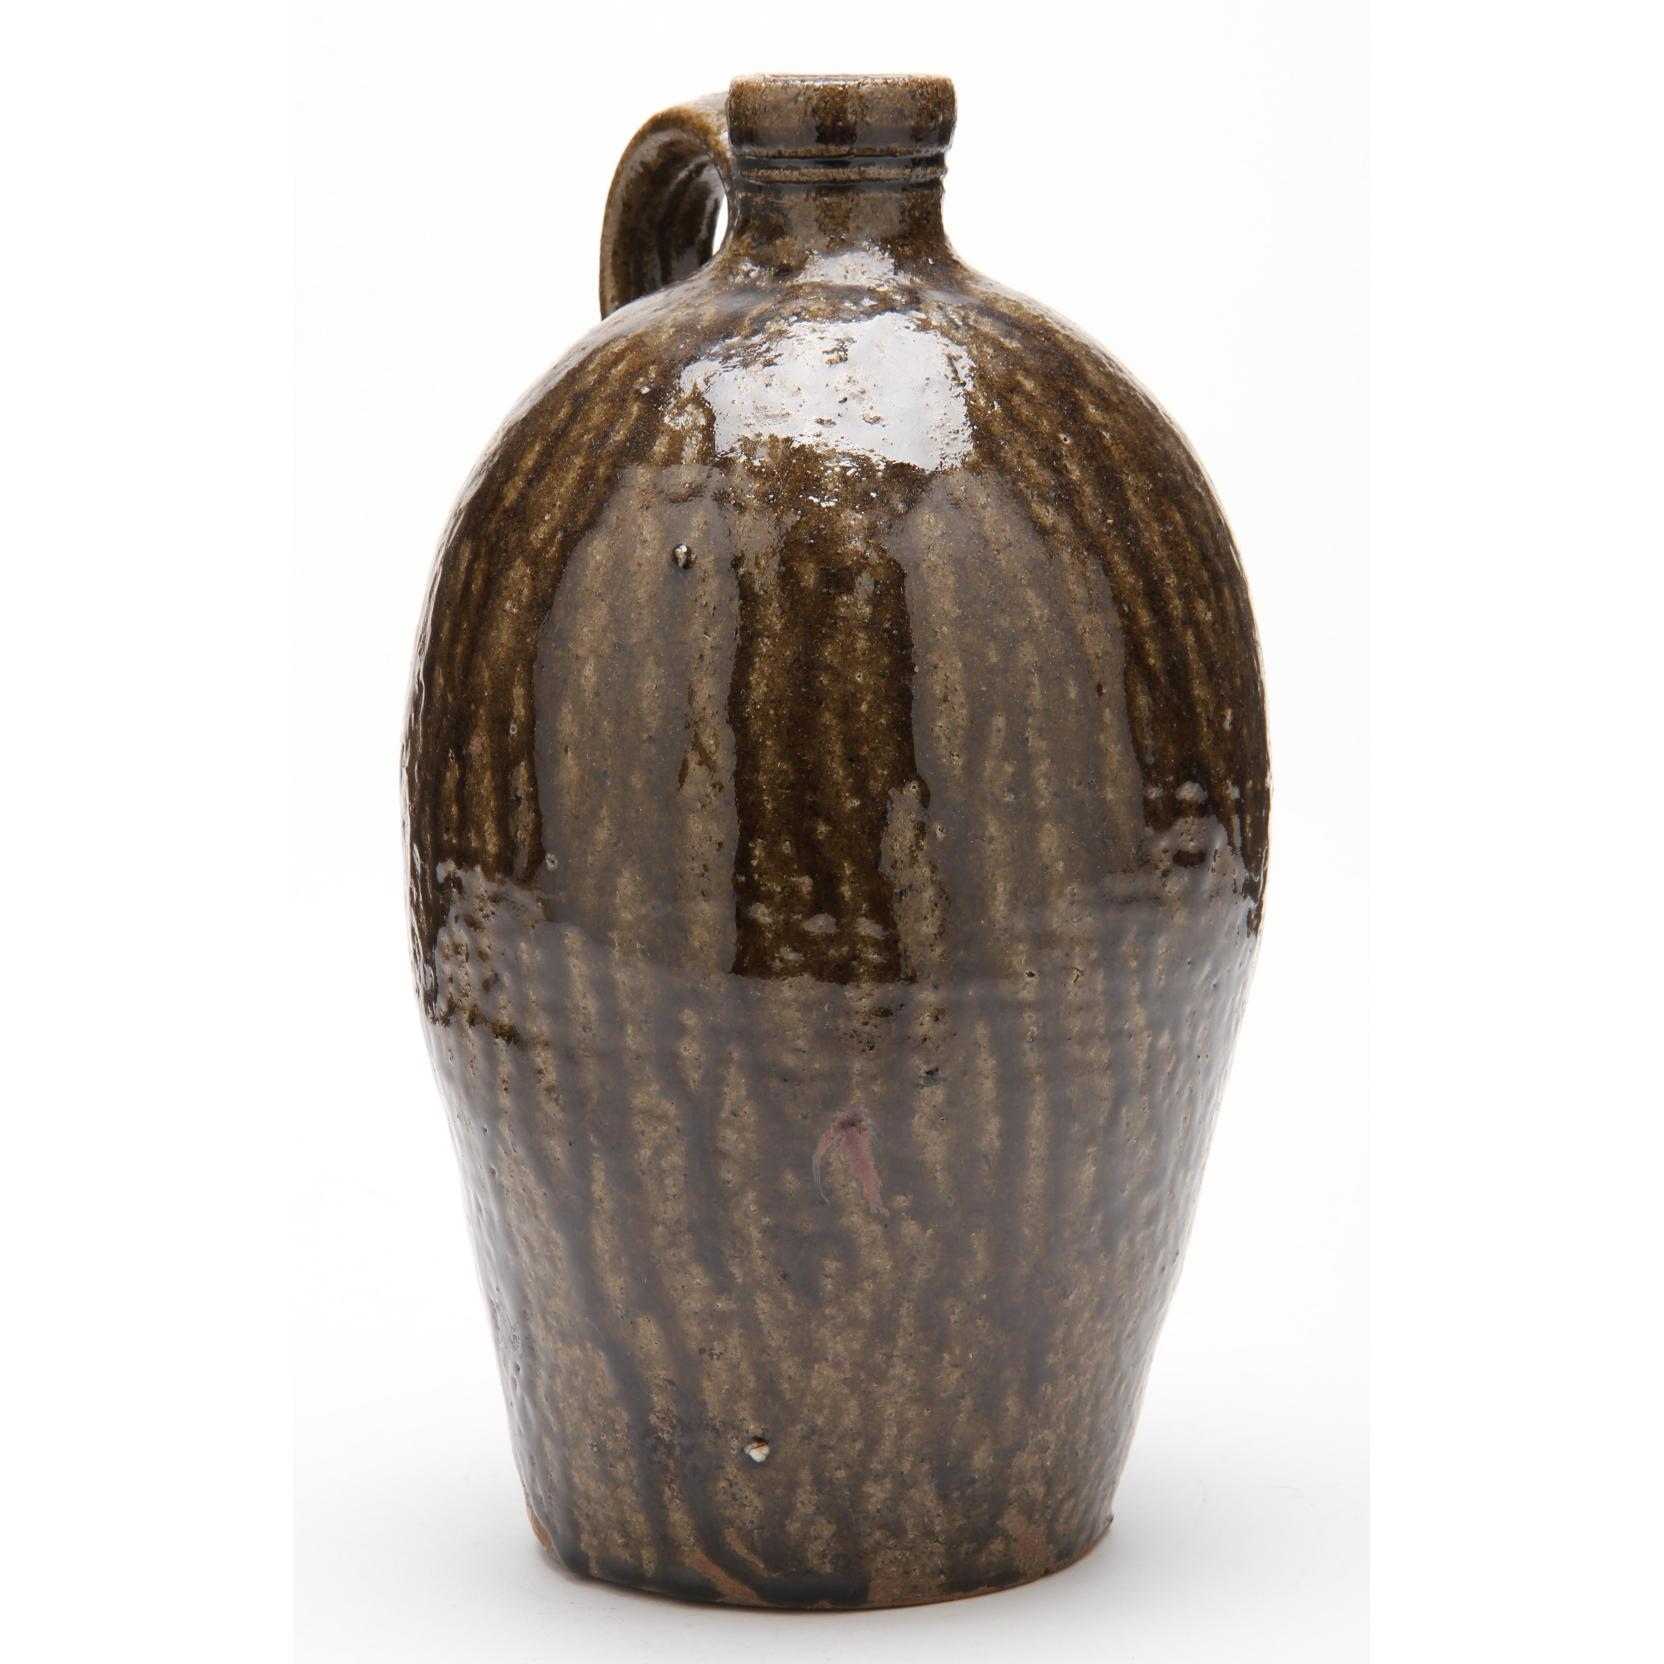 nc-pottery-one-gallon-jug-thomas-ritchie-1825-1909-lincoln-county